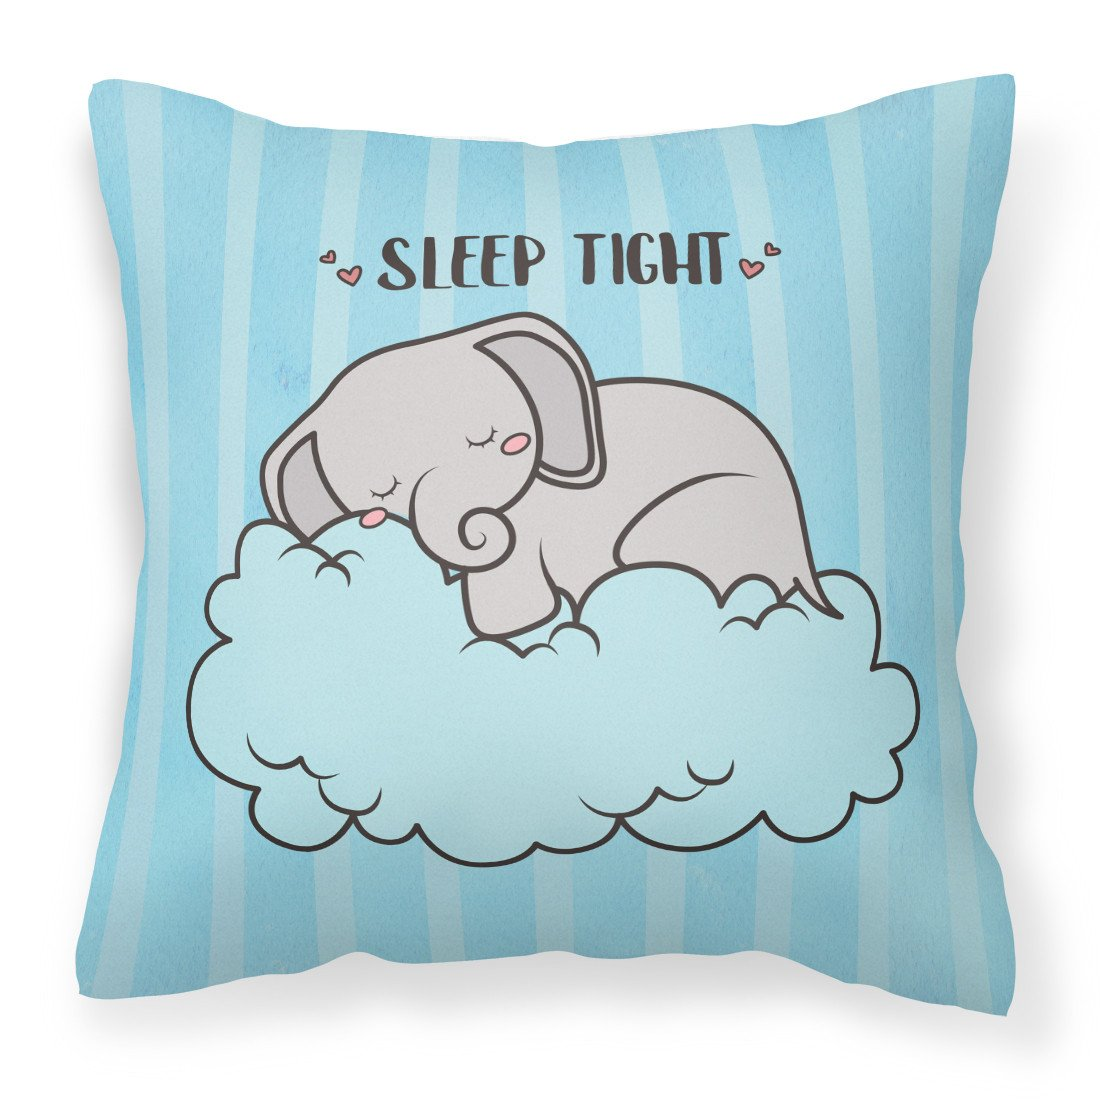 Nursery Sleep Tight Elephant Fabric Decorative Pillow BB7475PW1818 by Caroline's Treasures